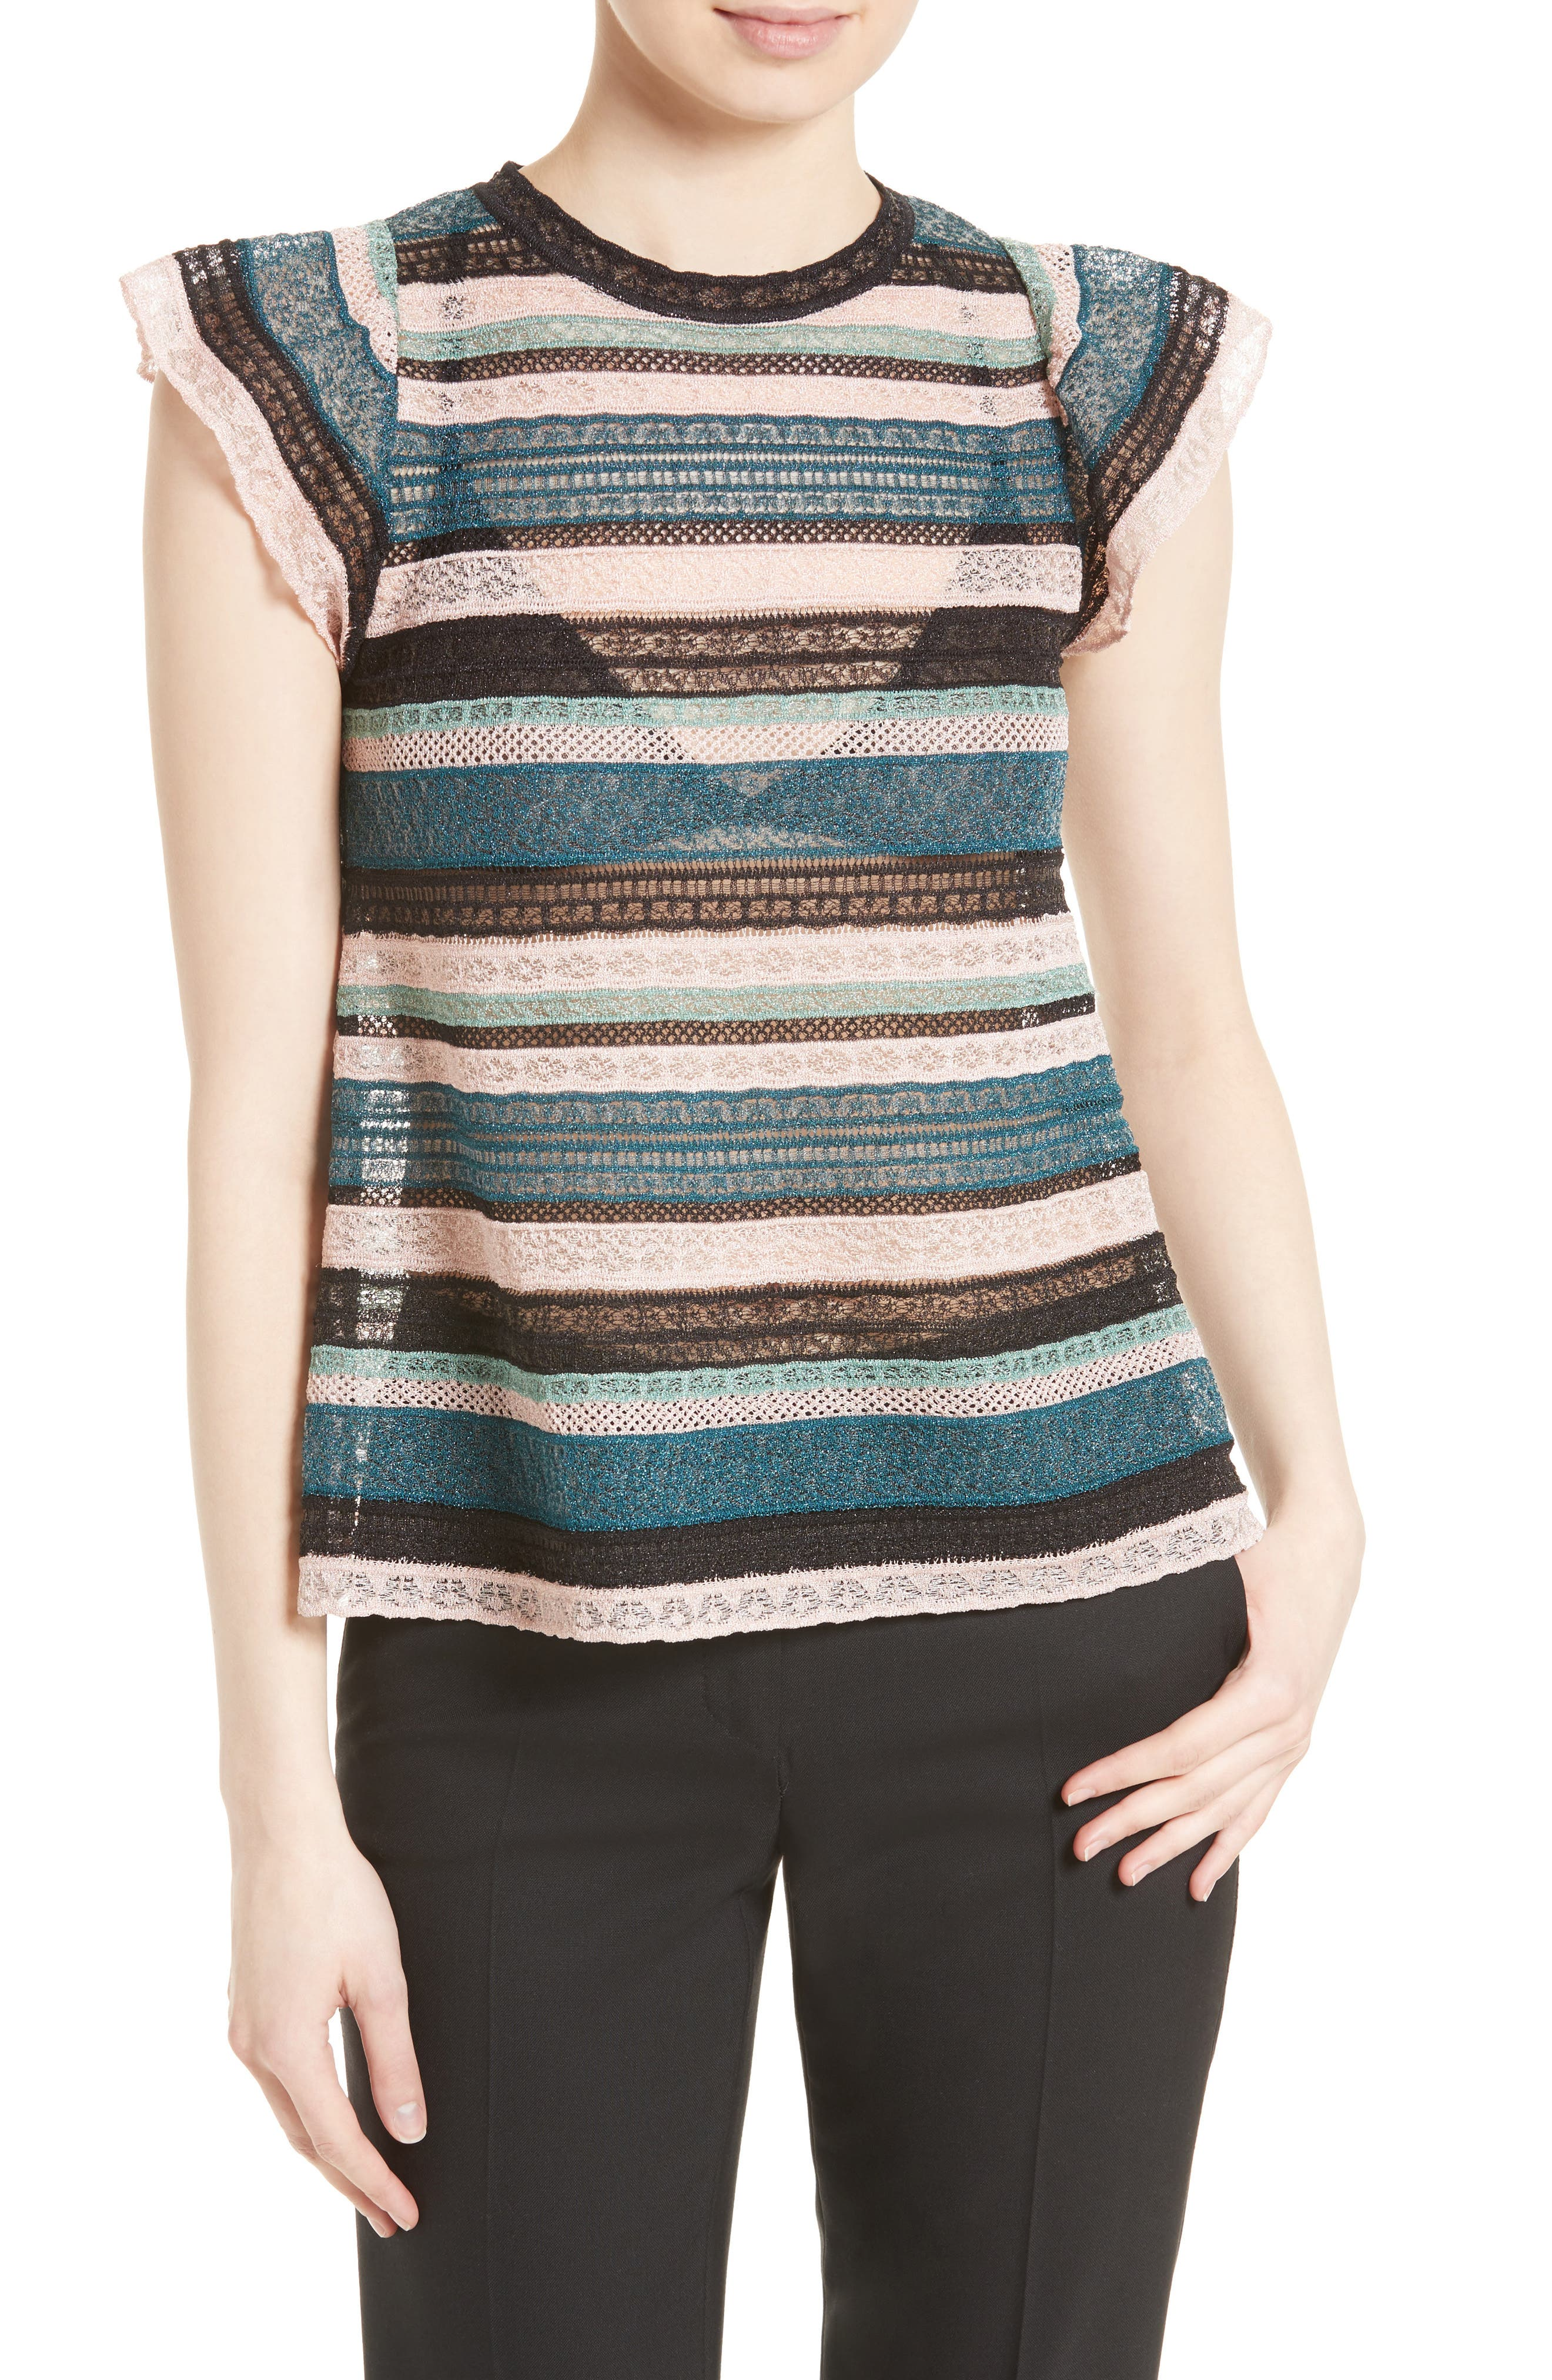 M Missoni Metallic Lace Ribbon Top